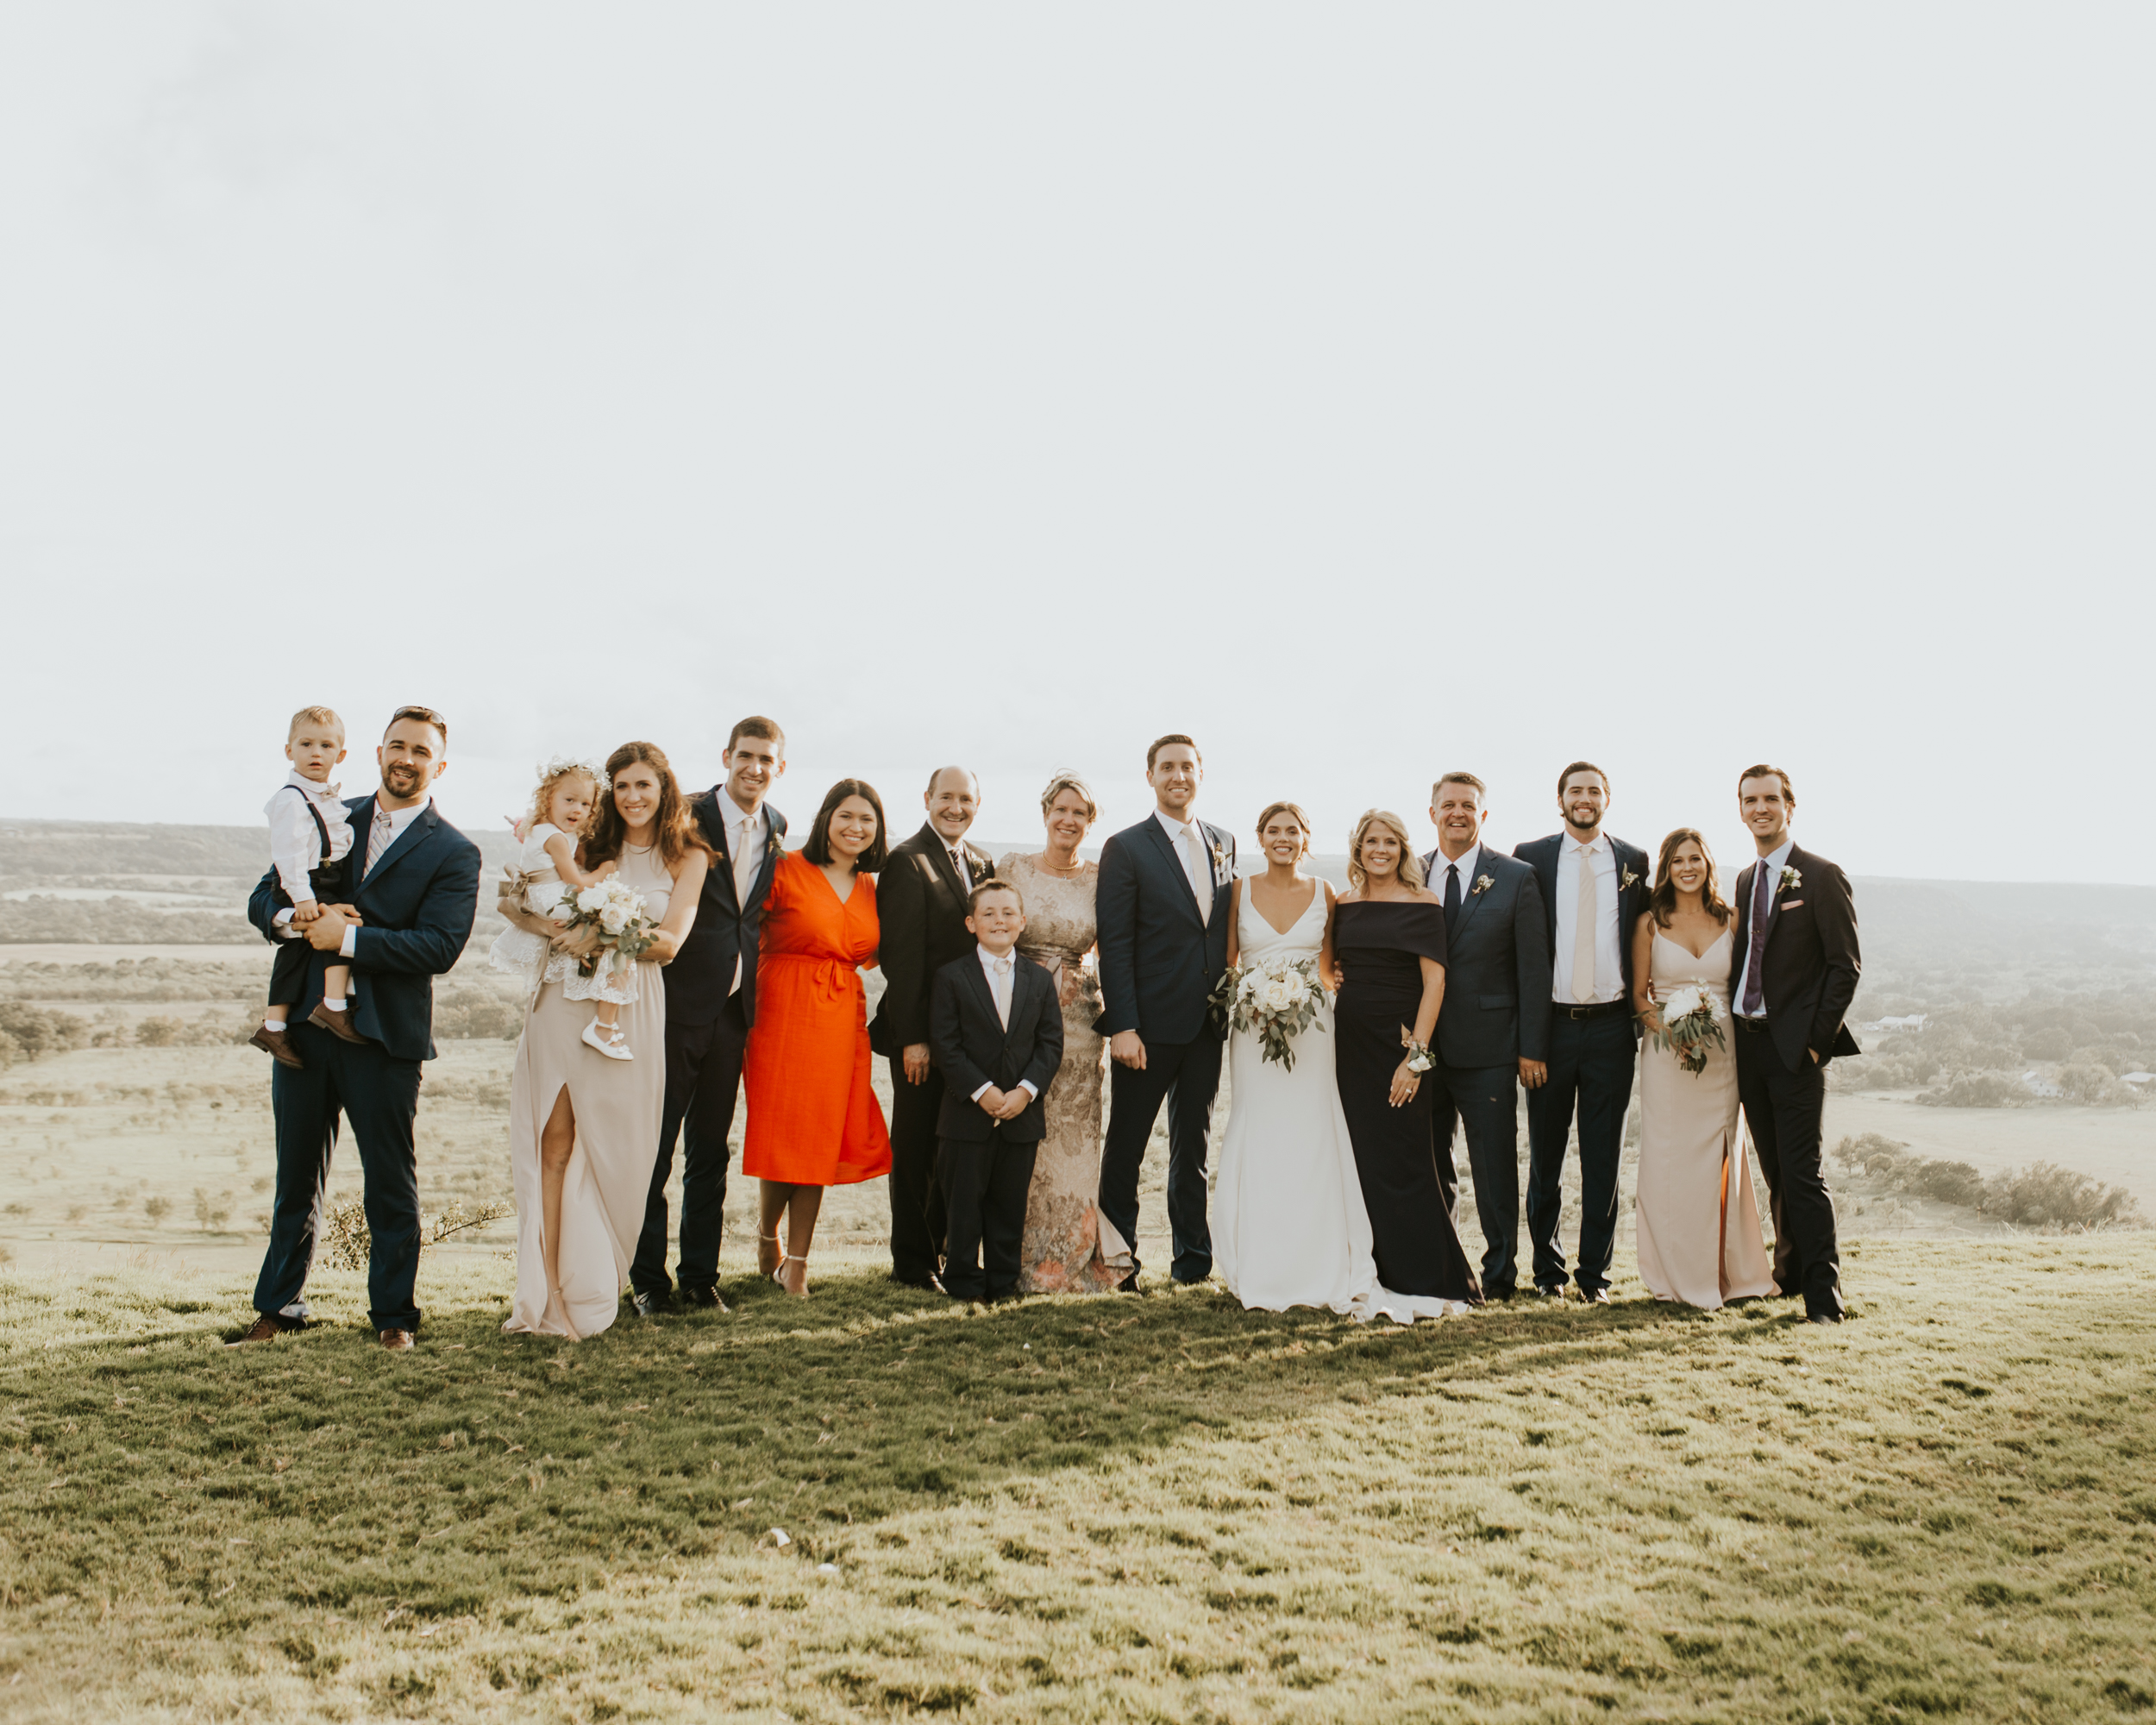 Kendall_Justin_Wedding_2018-264.jpg